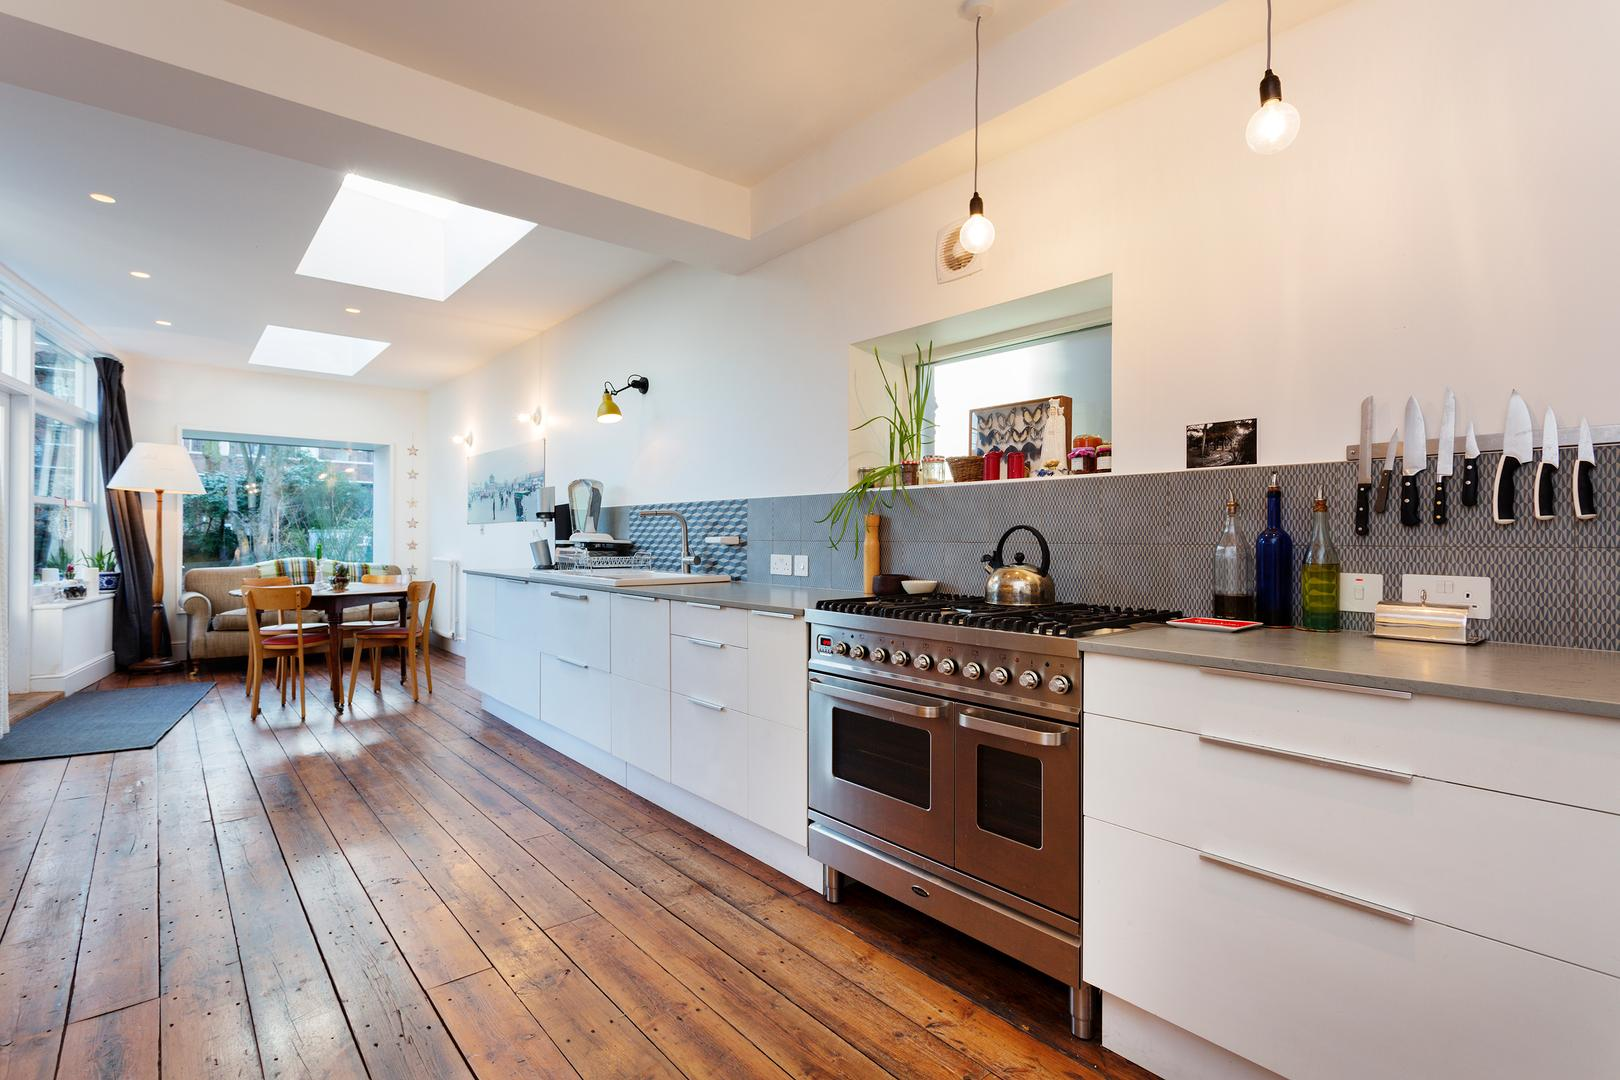 Property Image 1 - Upscale Tufnell Park House with Large Grand Interior